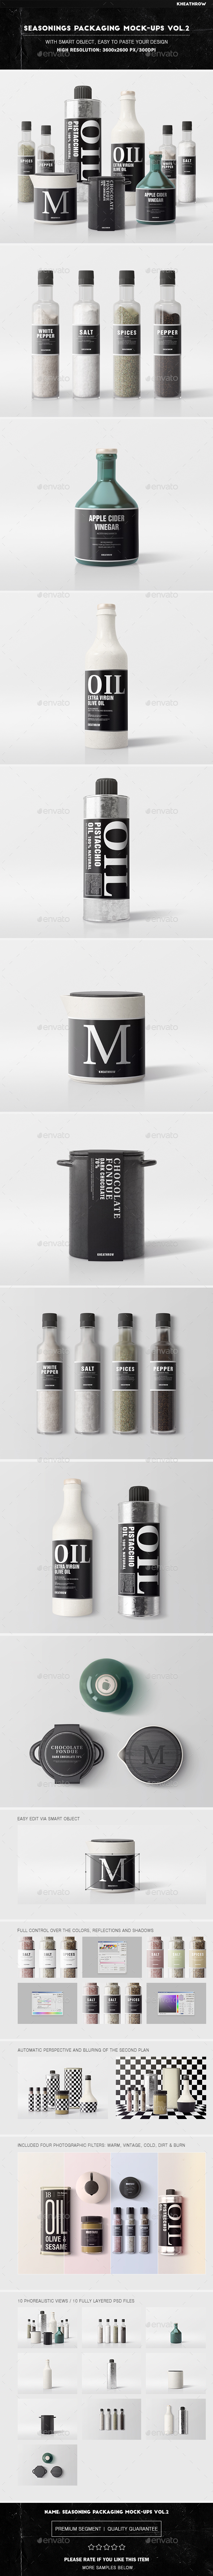 Seasonings Packaging Mock-Ups Vol.2